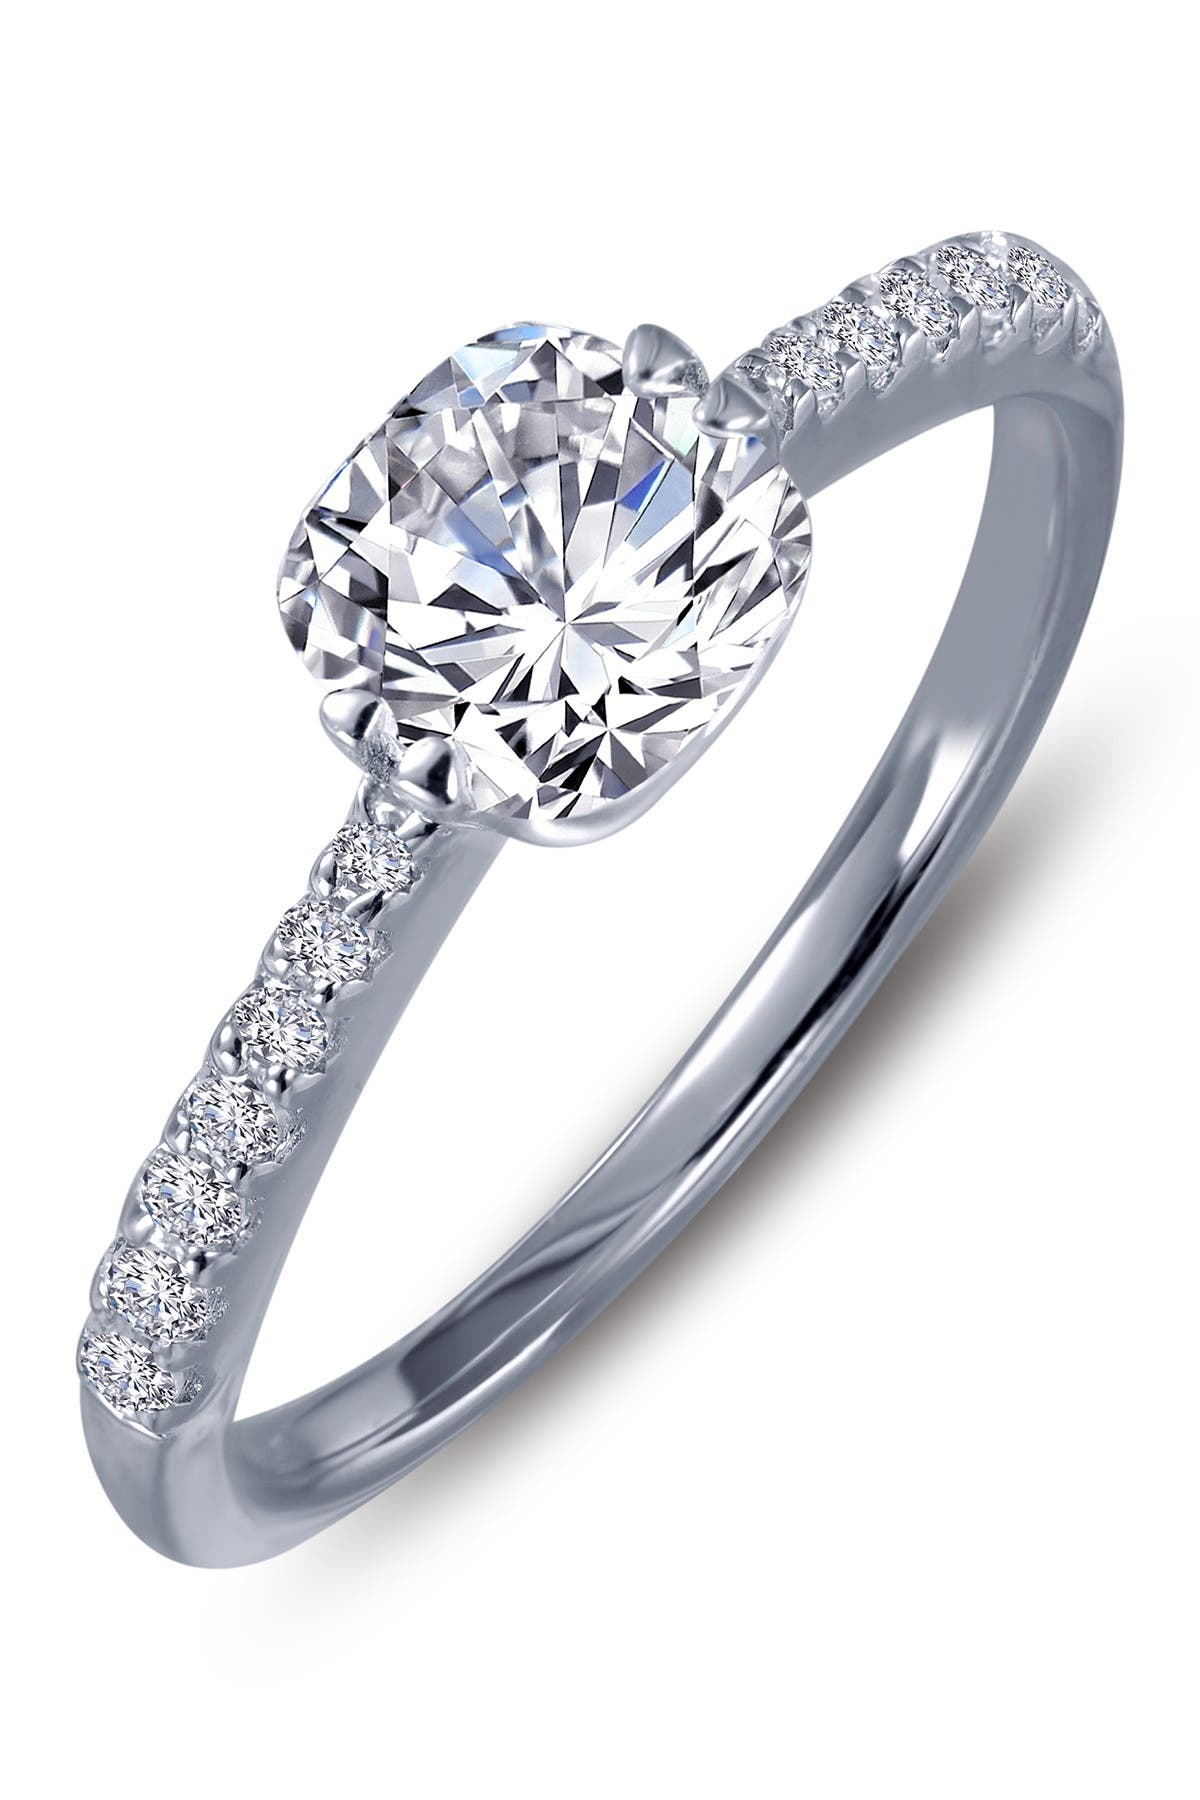 Image of LaFonn Sterling Silver Cushion Cut Simulated Stone Solitaire Ring